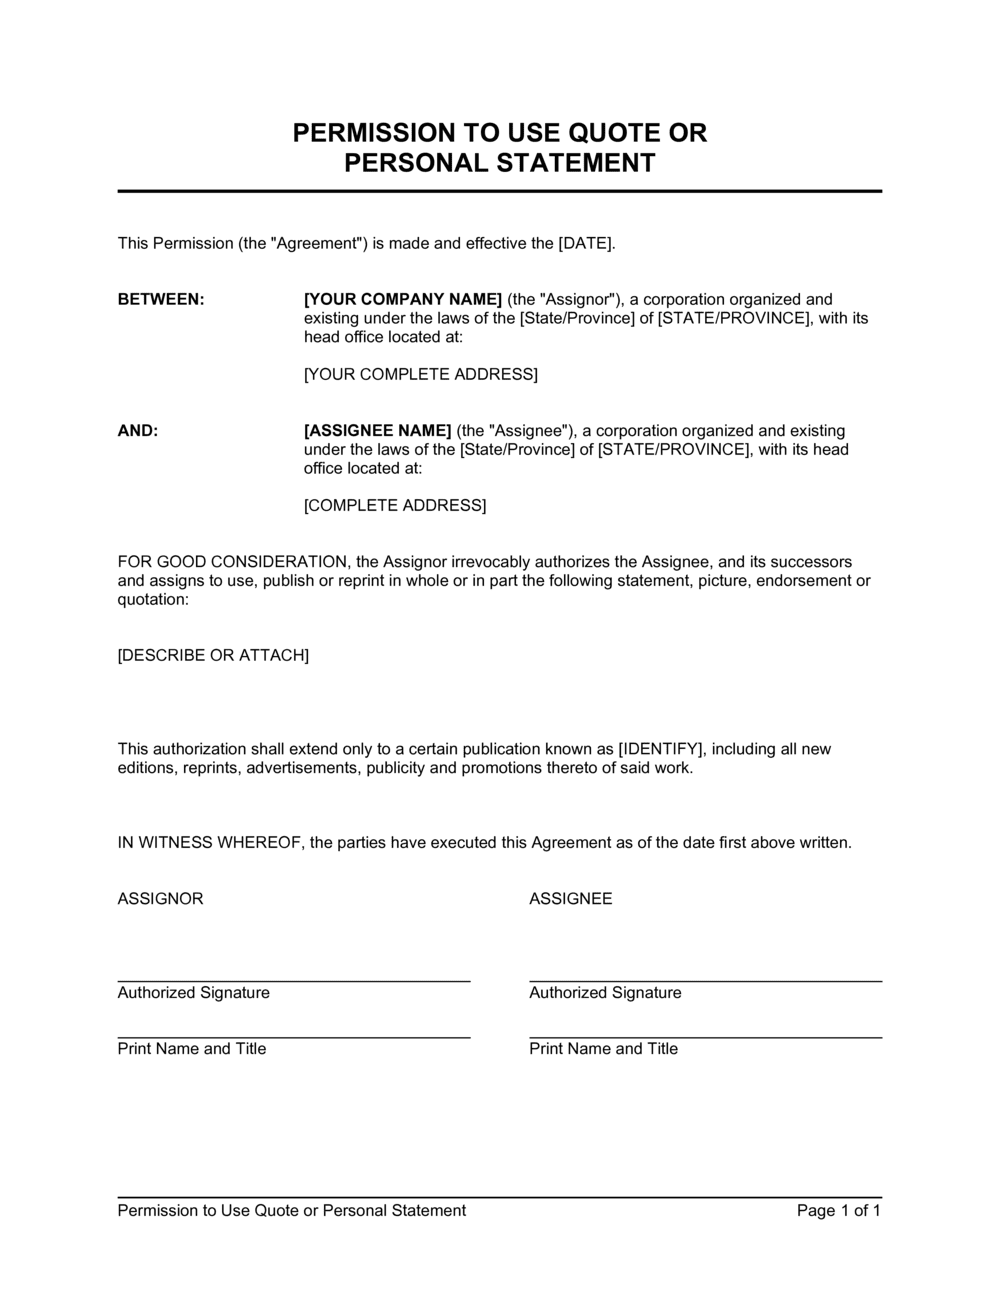 Business-in-a-Box's Permission to Use Quote or Personal Statement Template